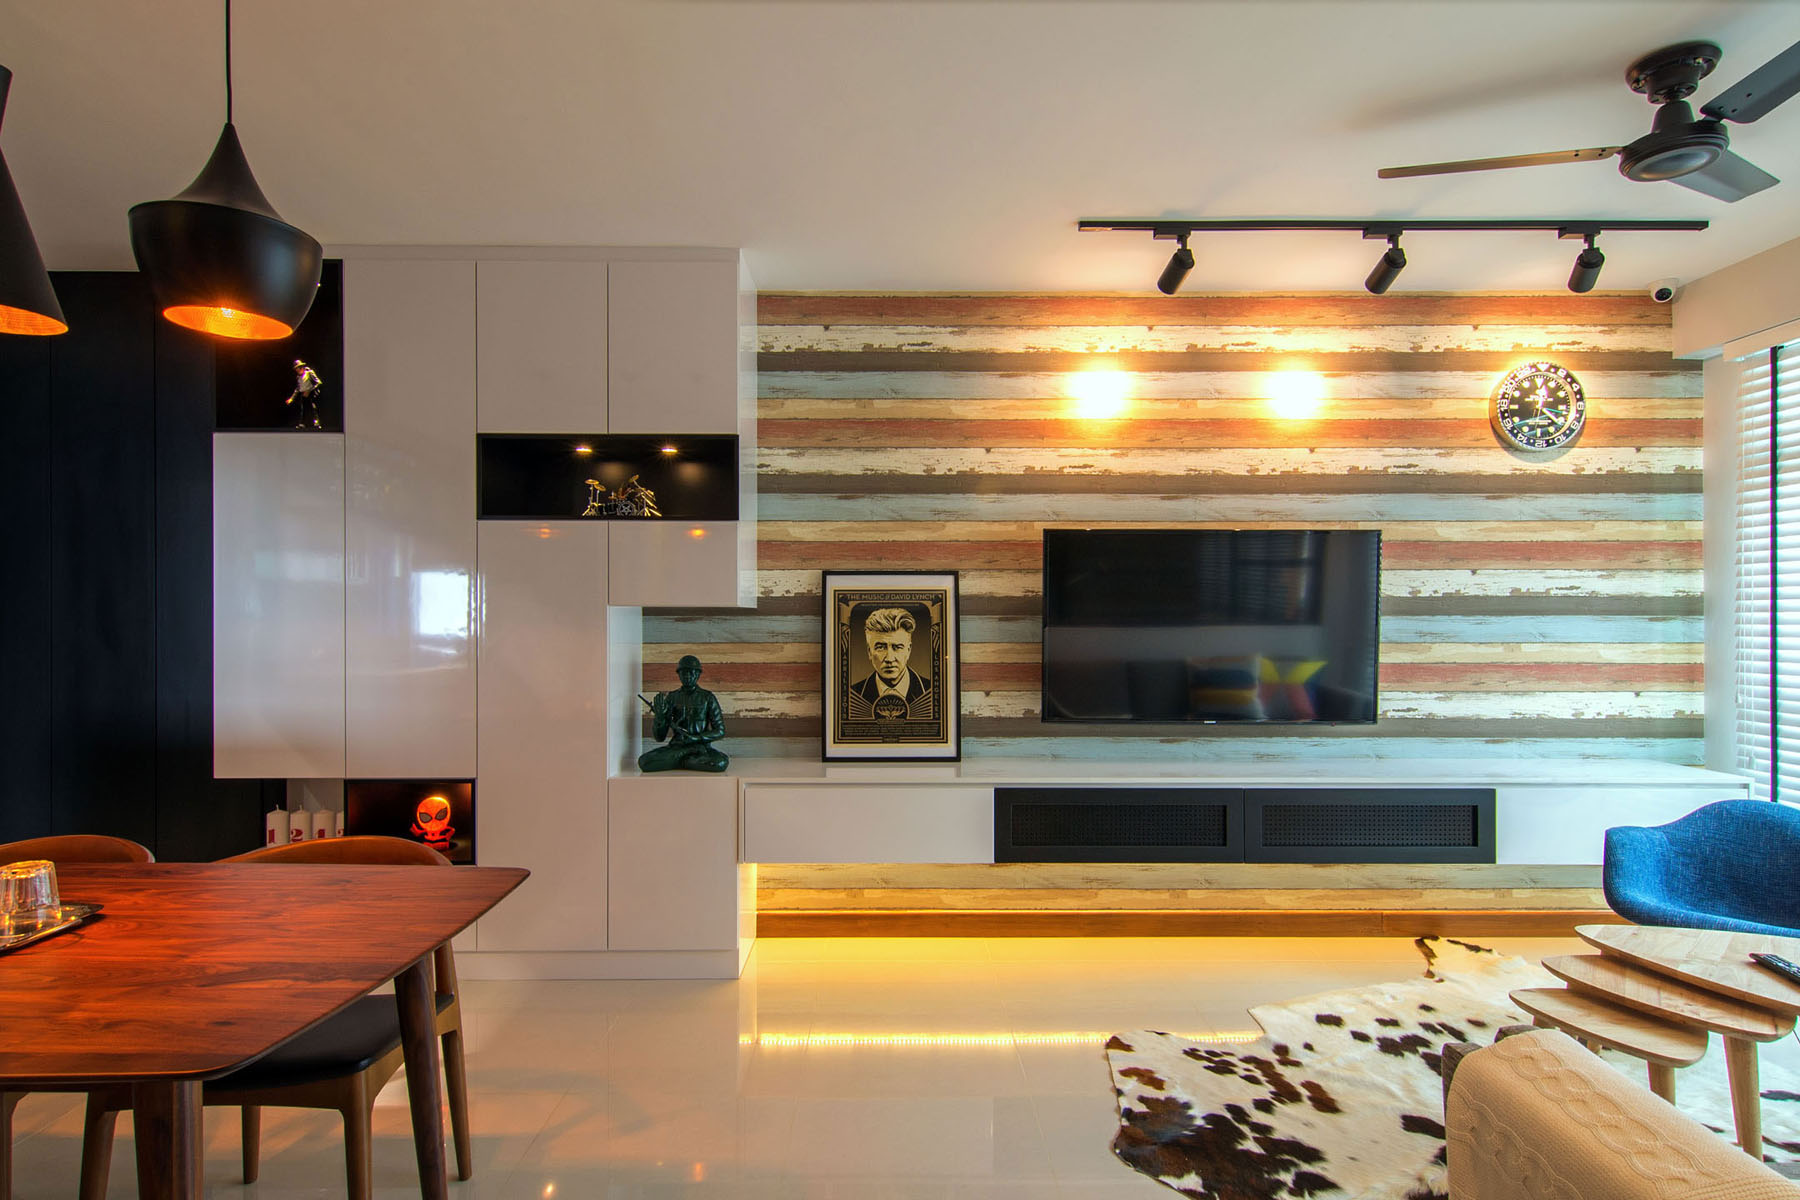 Small Apartment Interior Design Singapore cozy apartment in singapore with stylish elements | idesignarch